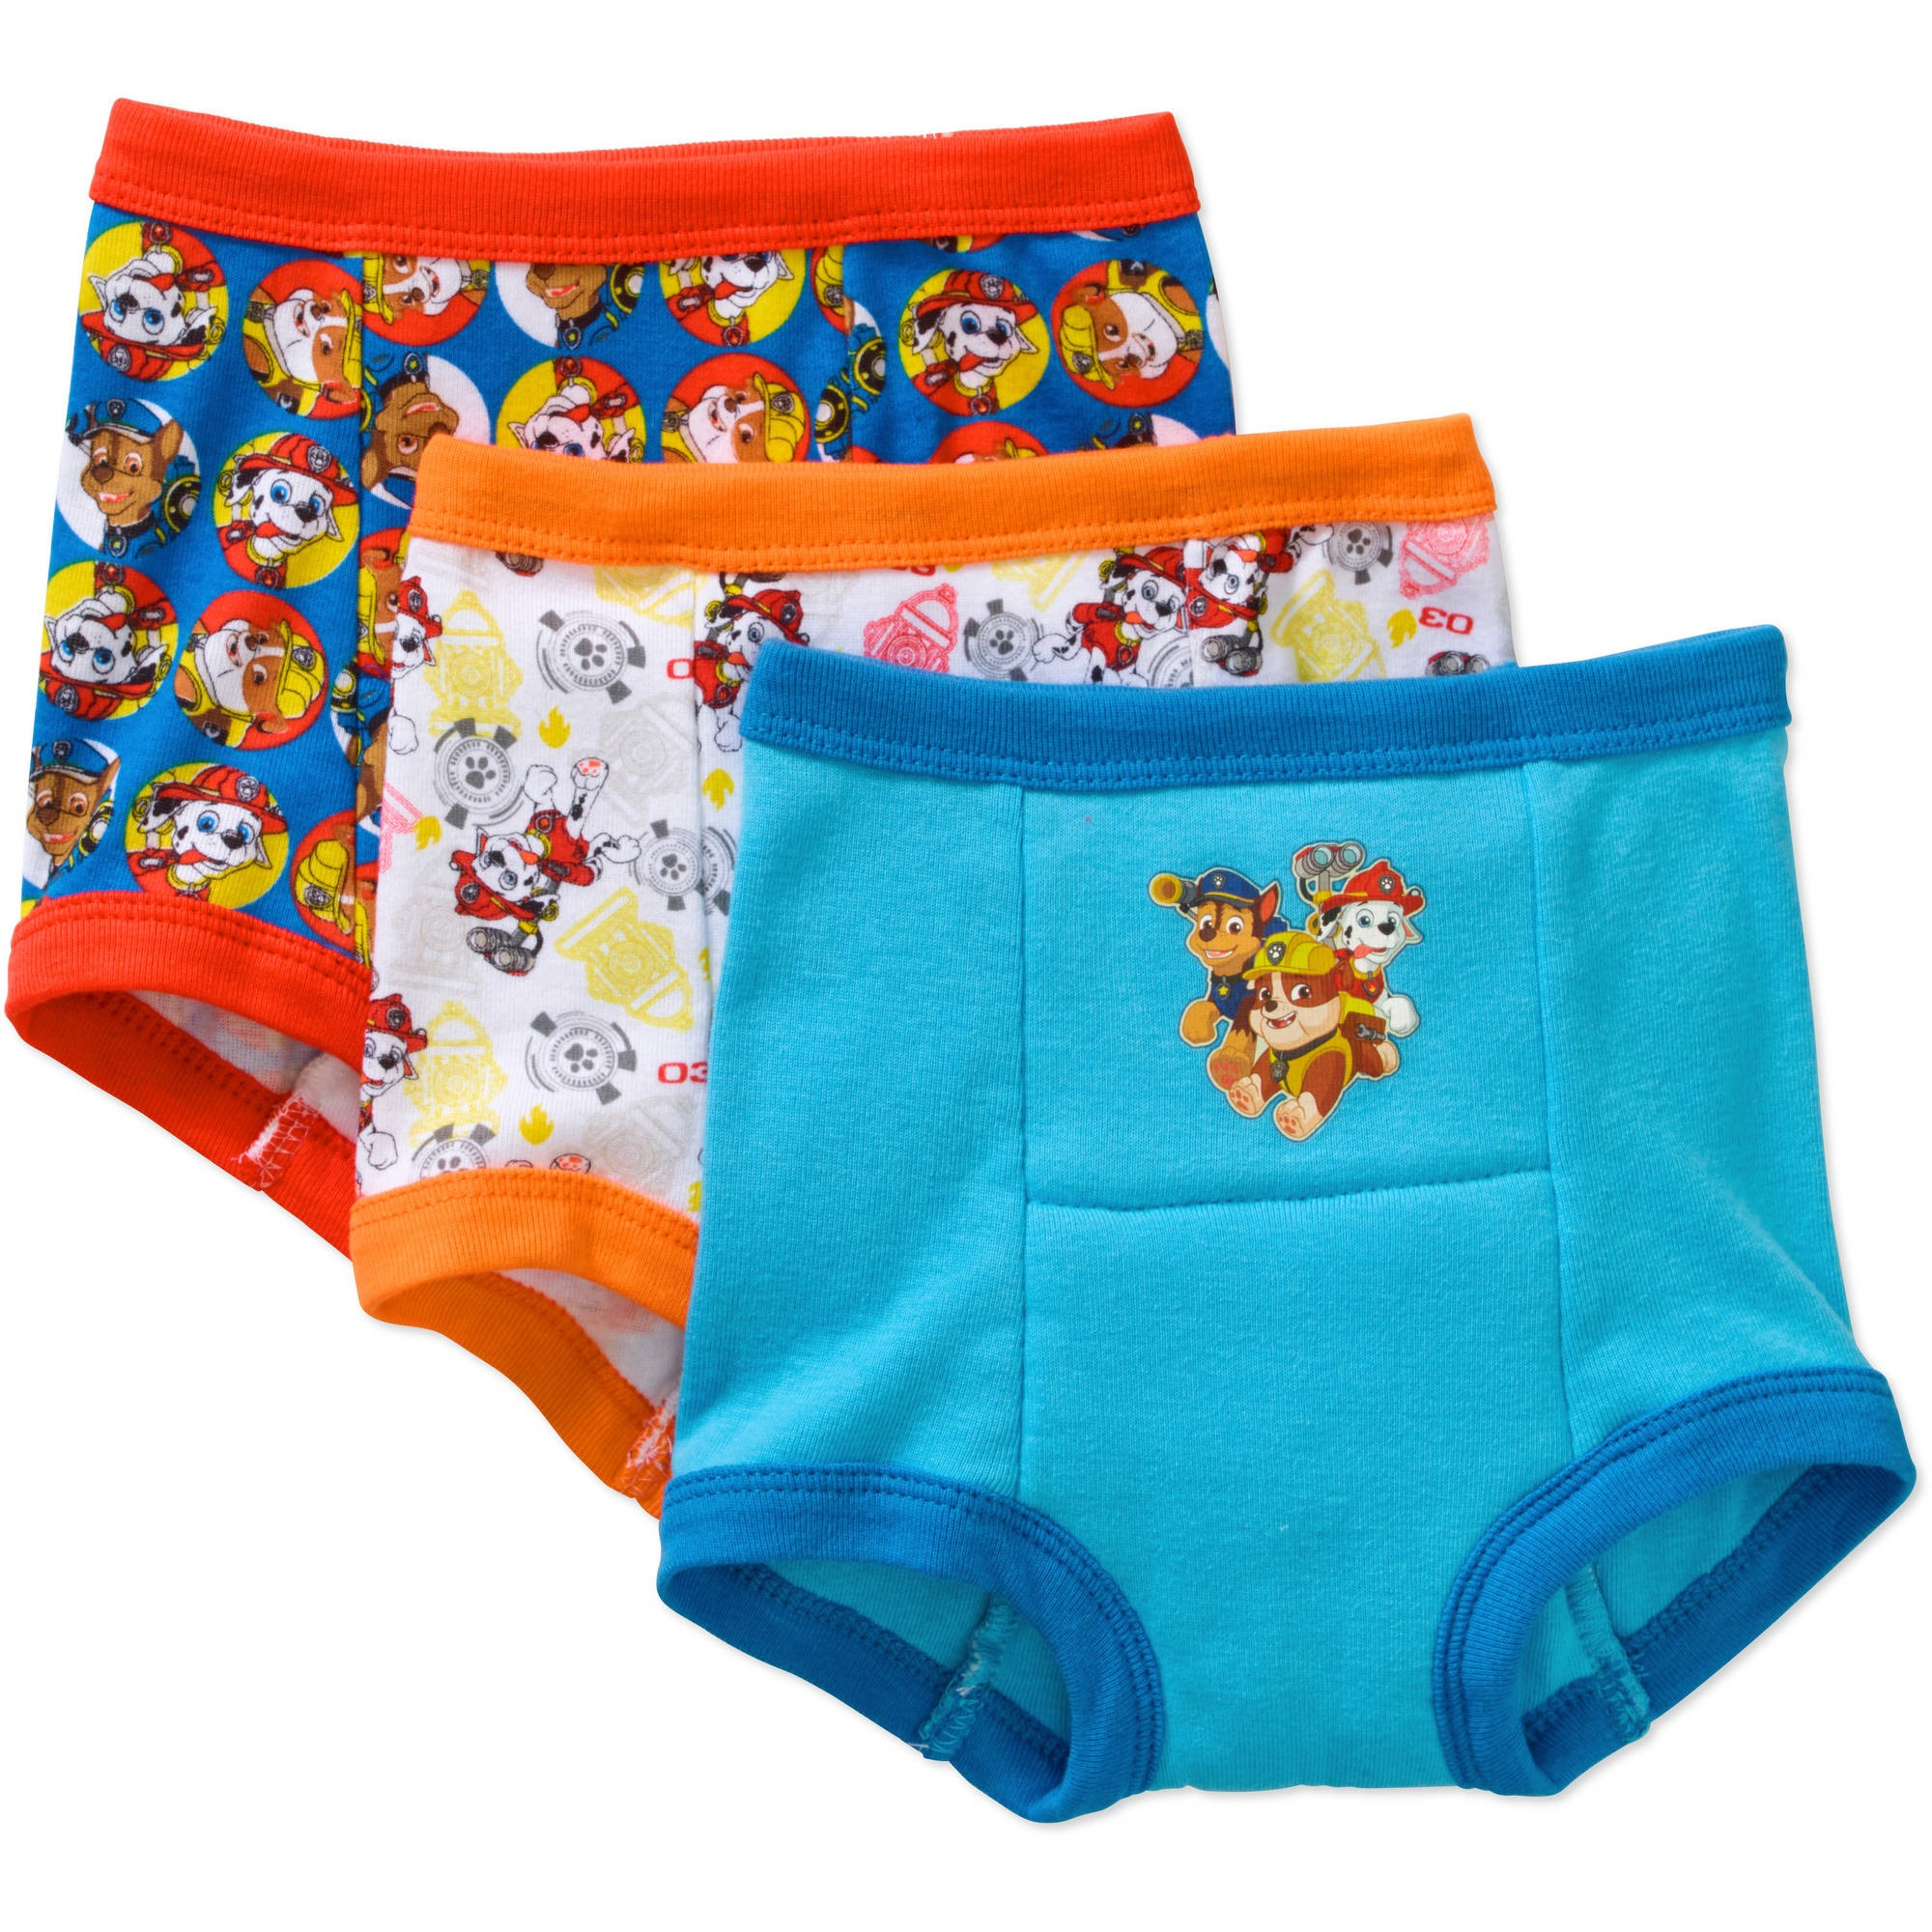 Paw Patrol Boys Potty Training Pant Multipack Baby and Toddler Underwear